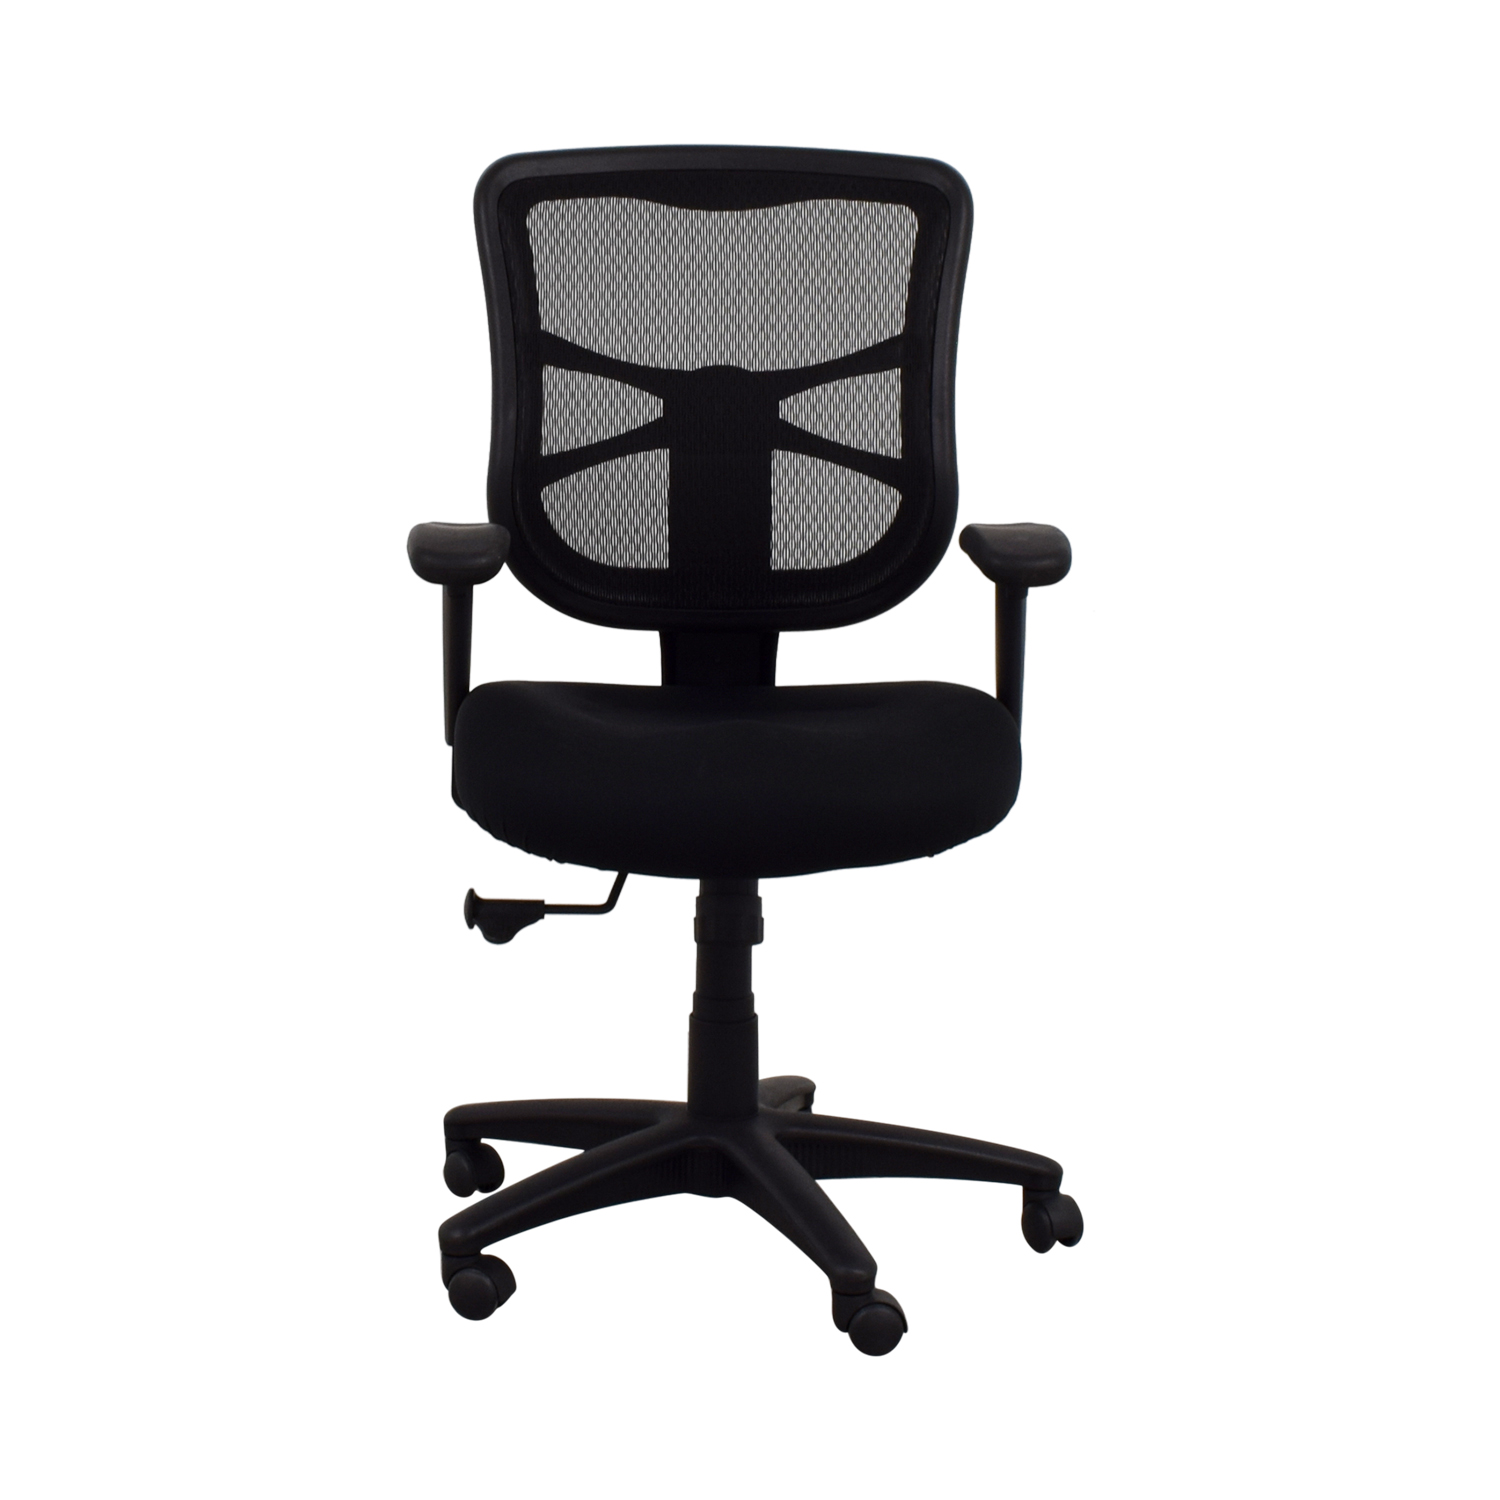 Office Chairs At Staples 53 Off Staples Staples Adjustable Desk Chair Chairs